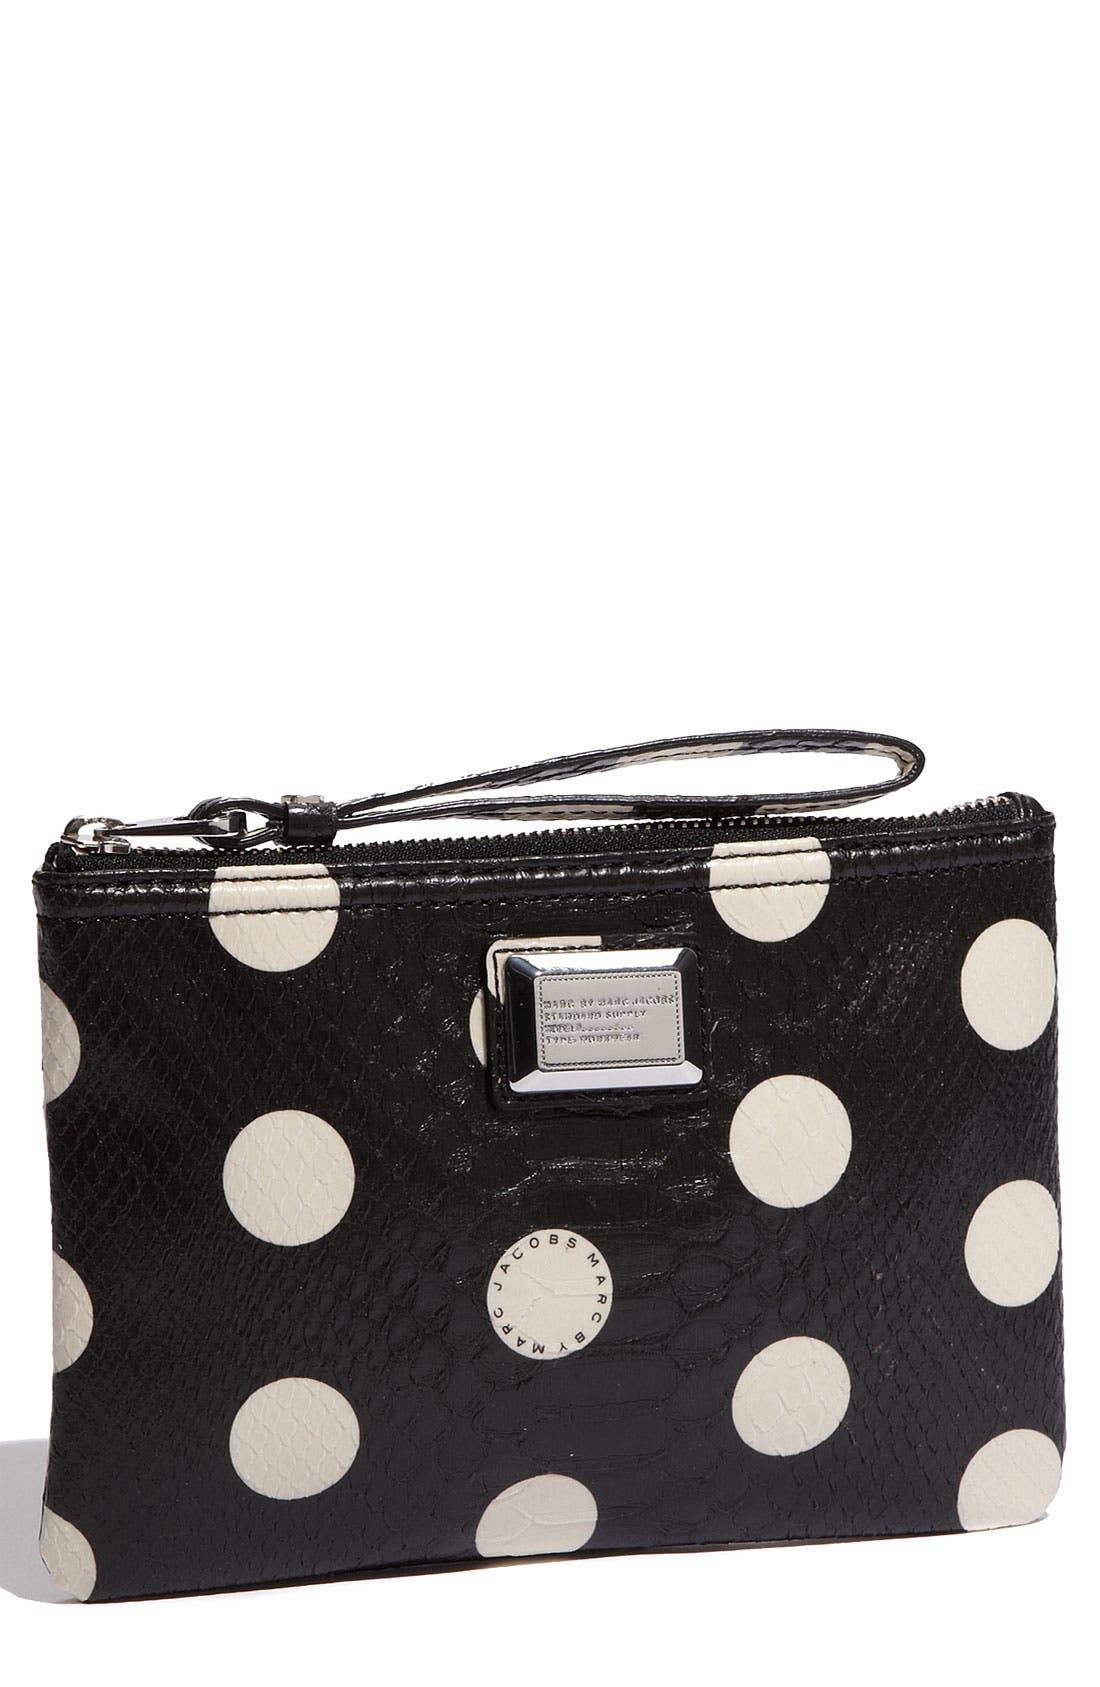 Main Image - MARC BY MARC JACOBS 'Dotty Snake' Faux Leather Wristlet